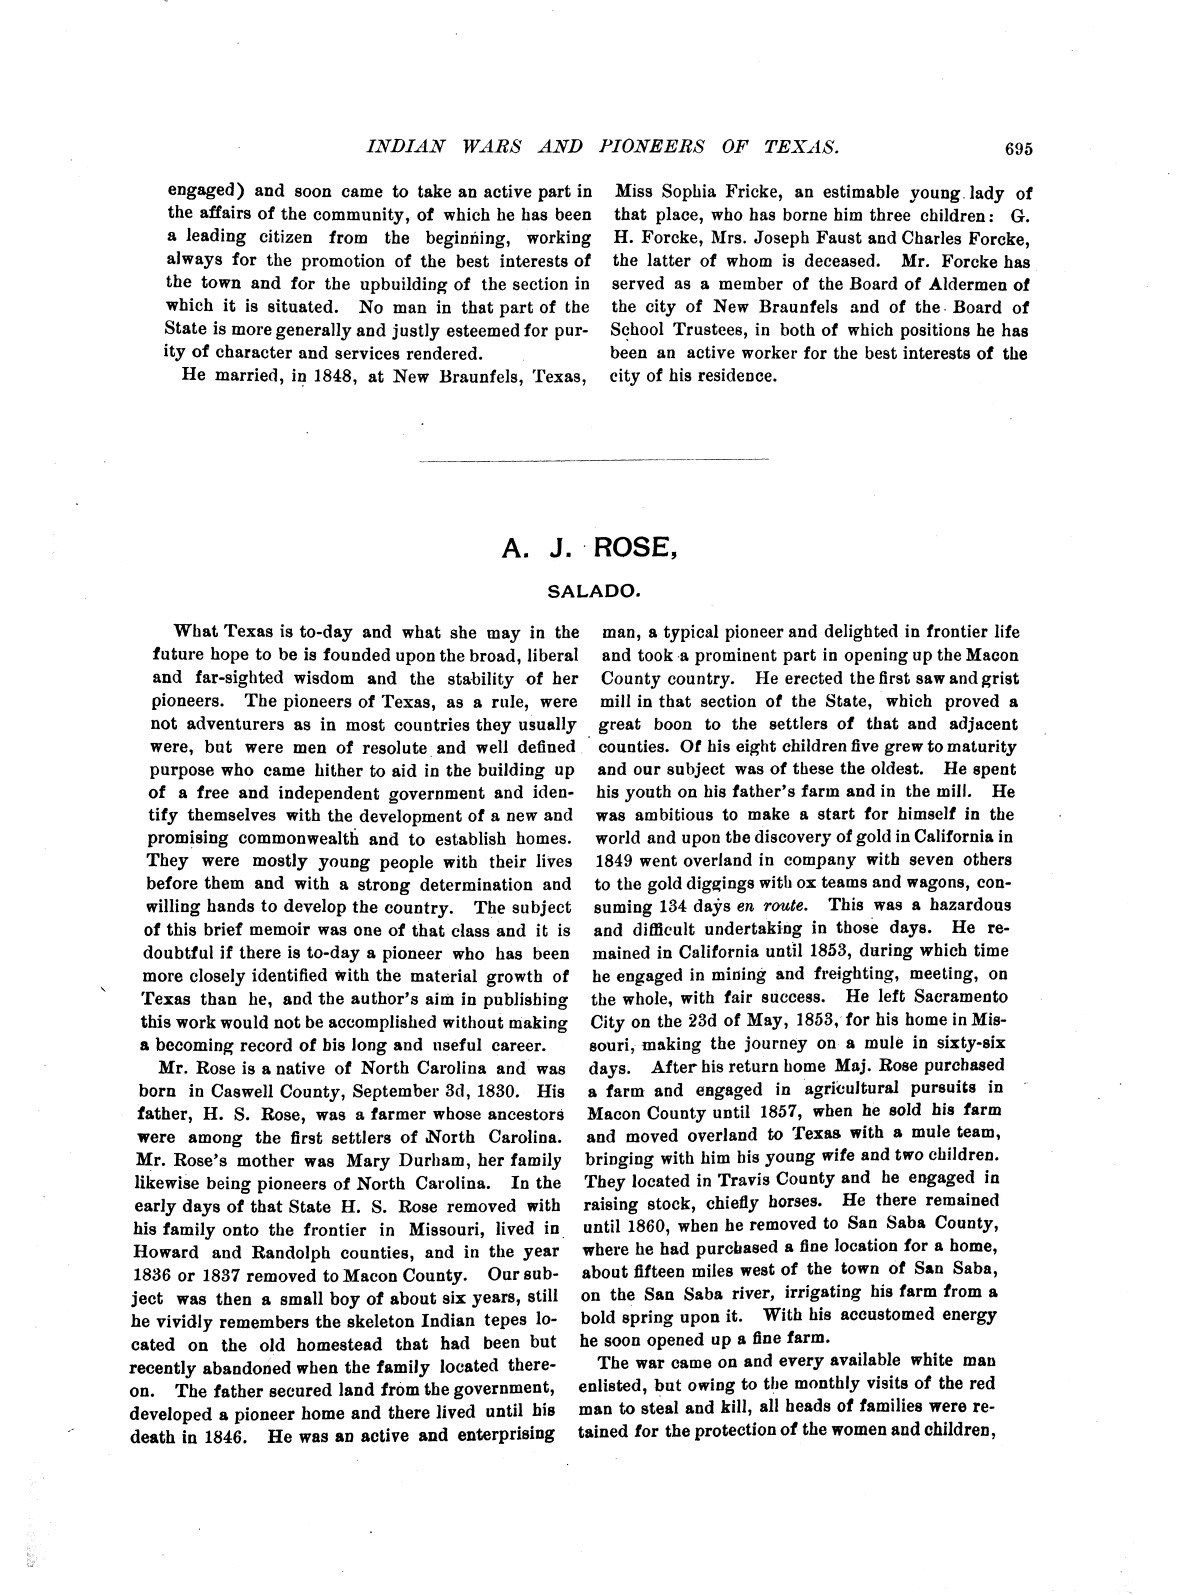 Indian wars and pioneers of Texas / by John Henry Brown.                                                                                                      [Sequence #]: 806 of 894